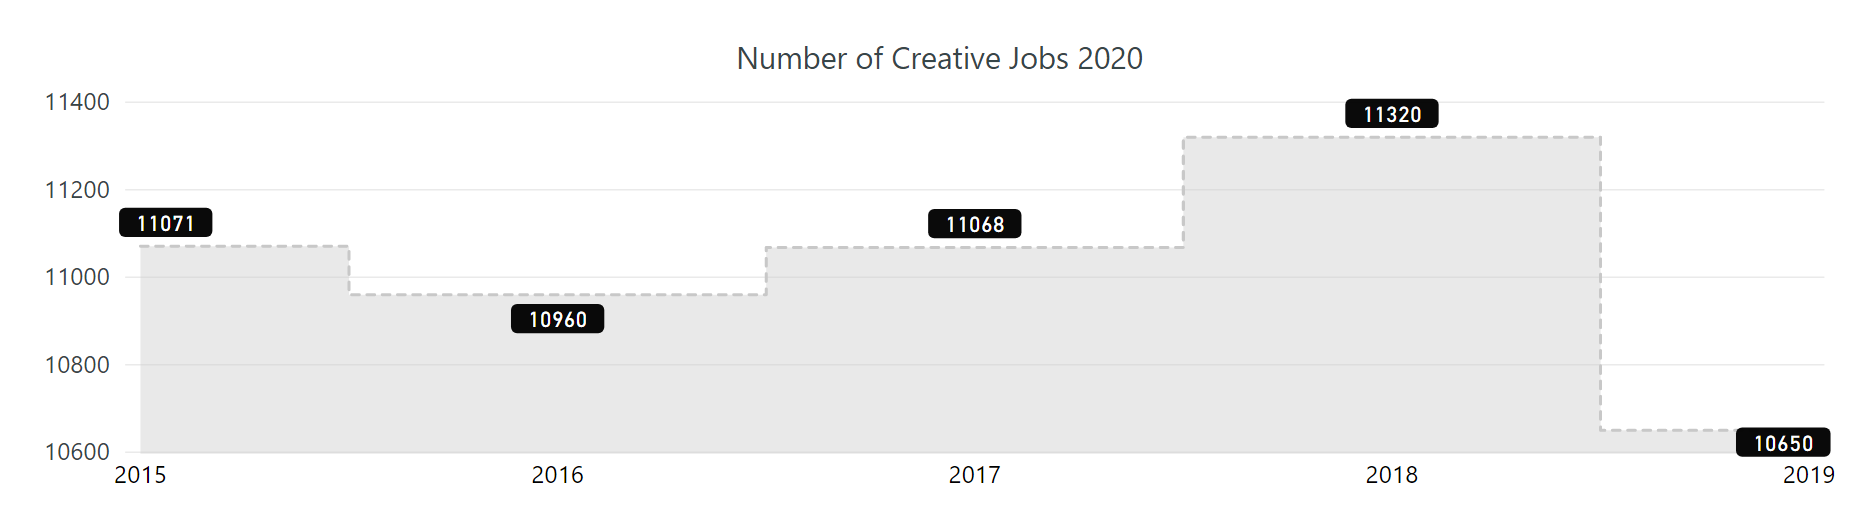 graph showing creative j19s by year from 2015 to 2020. The number dipped from 2015 to 2016 but then rose for the next two years. The number plummeted in 2019.